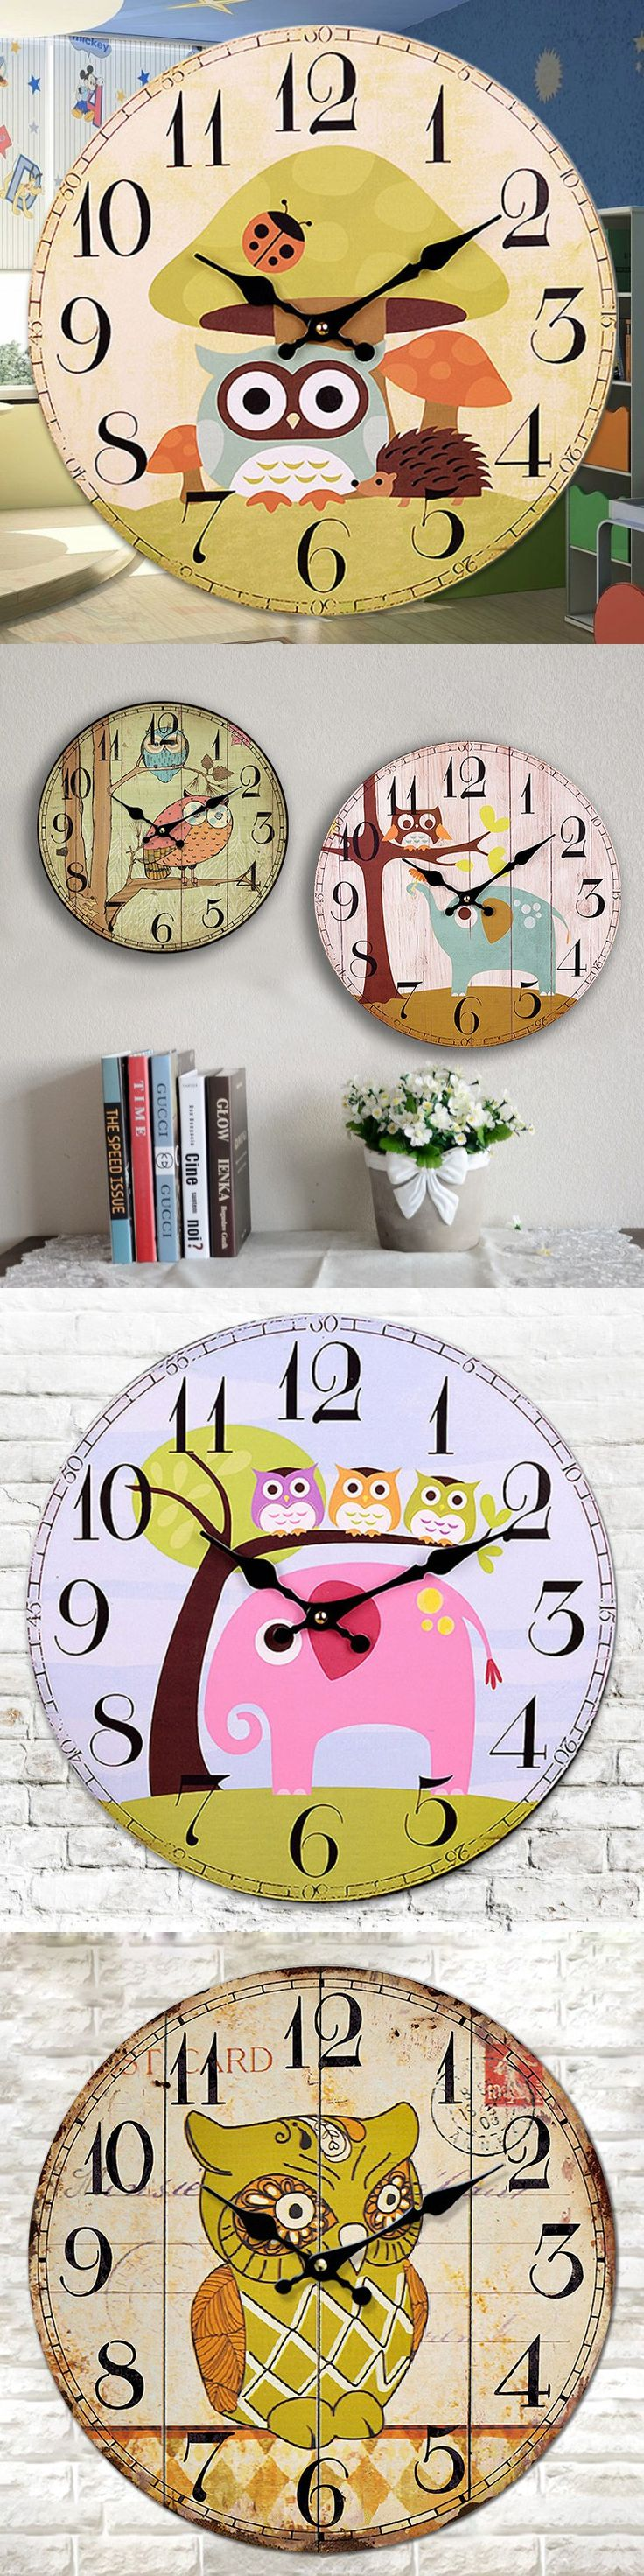 Cute Owl Mute Watch Vintage Wall Clock Relogio De Parede Kids Wall Clocks French Country Home Decor 12 Inches $33.99